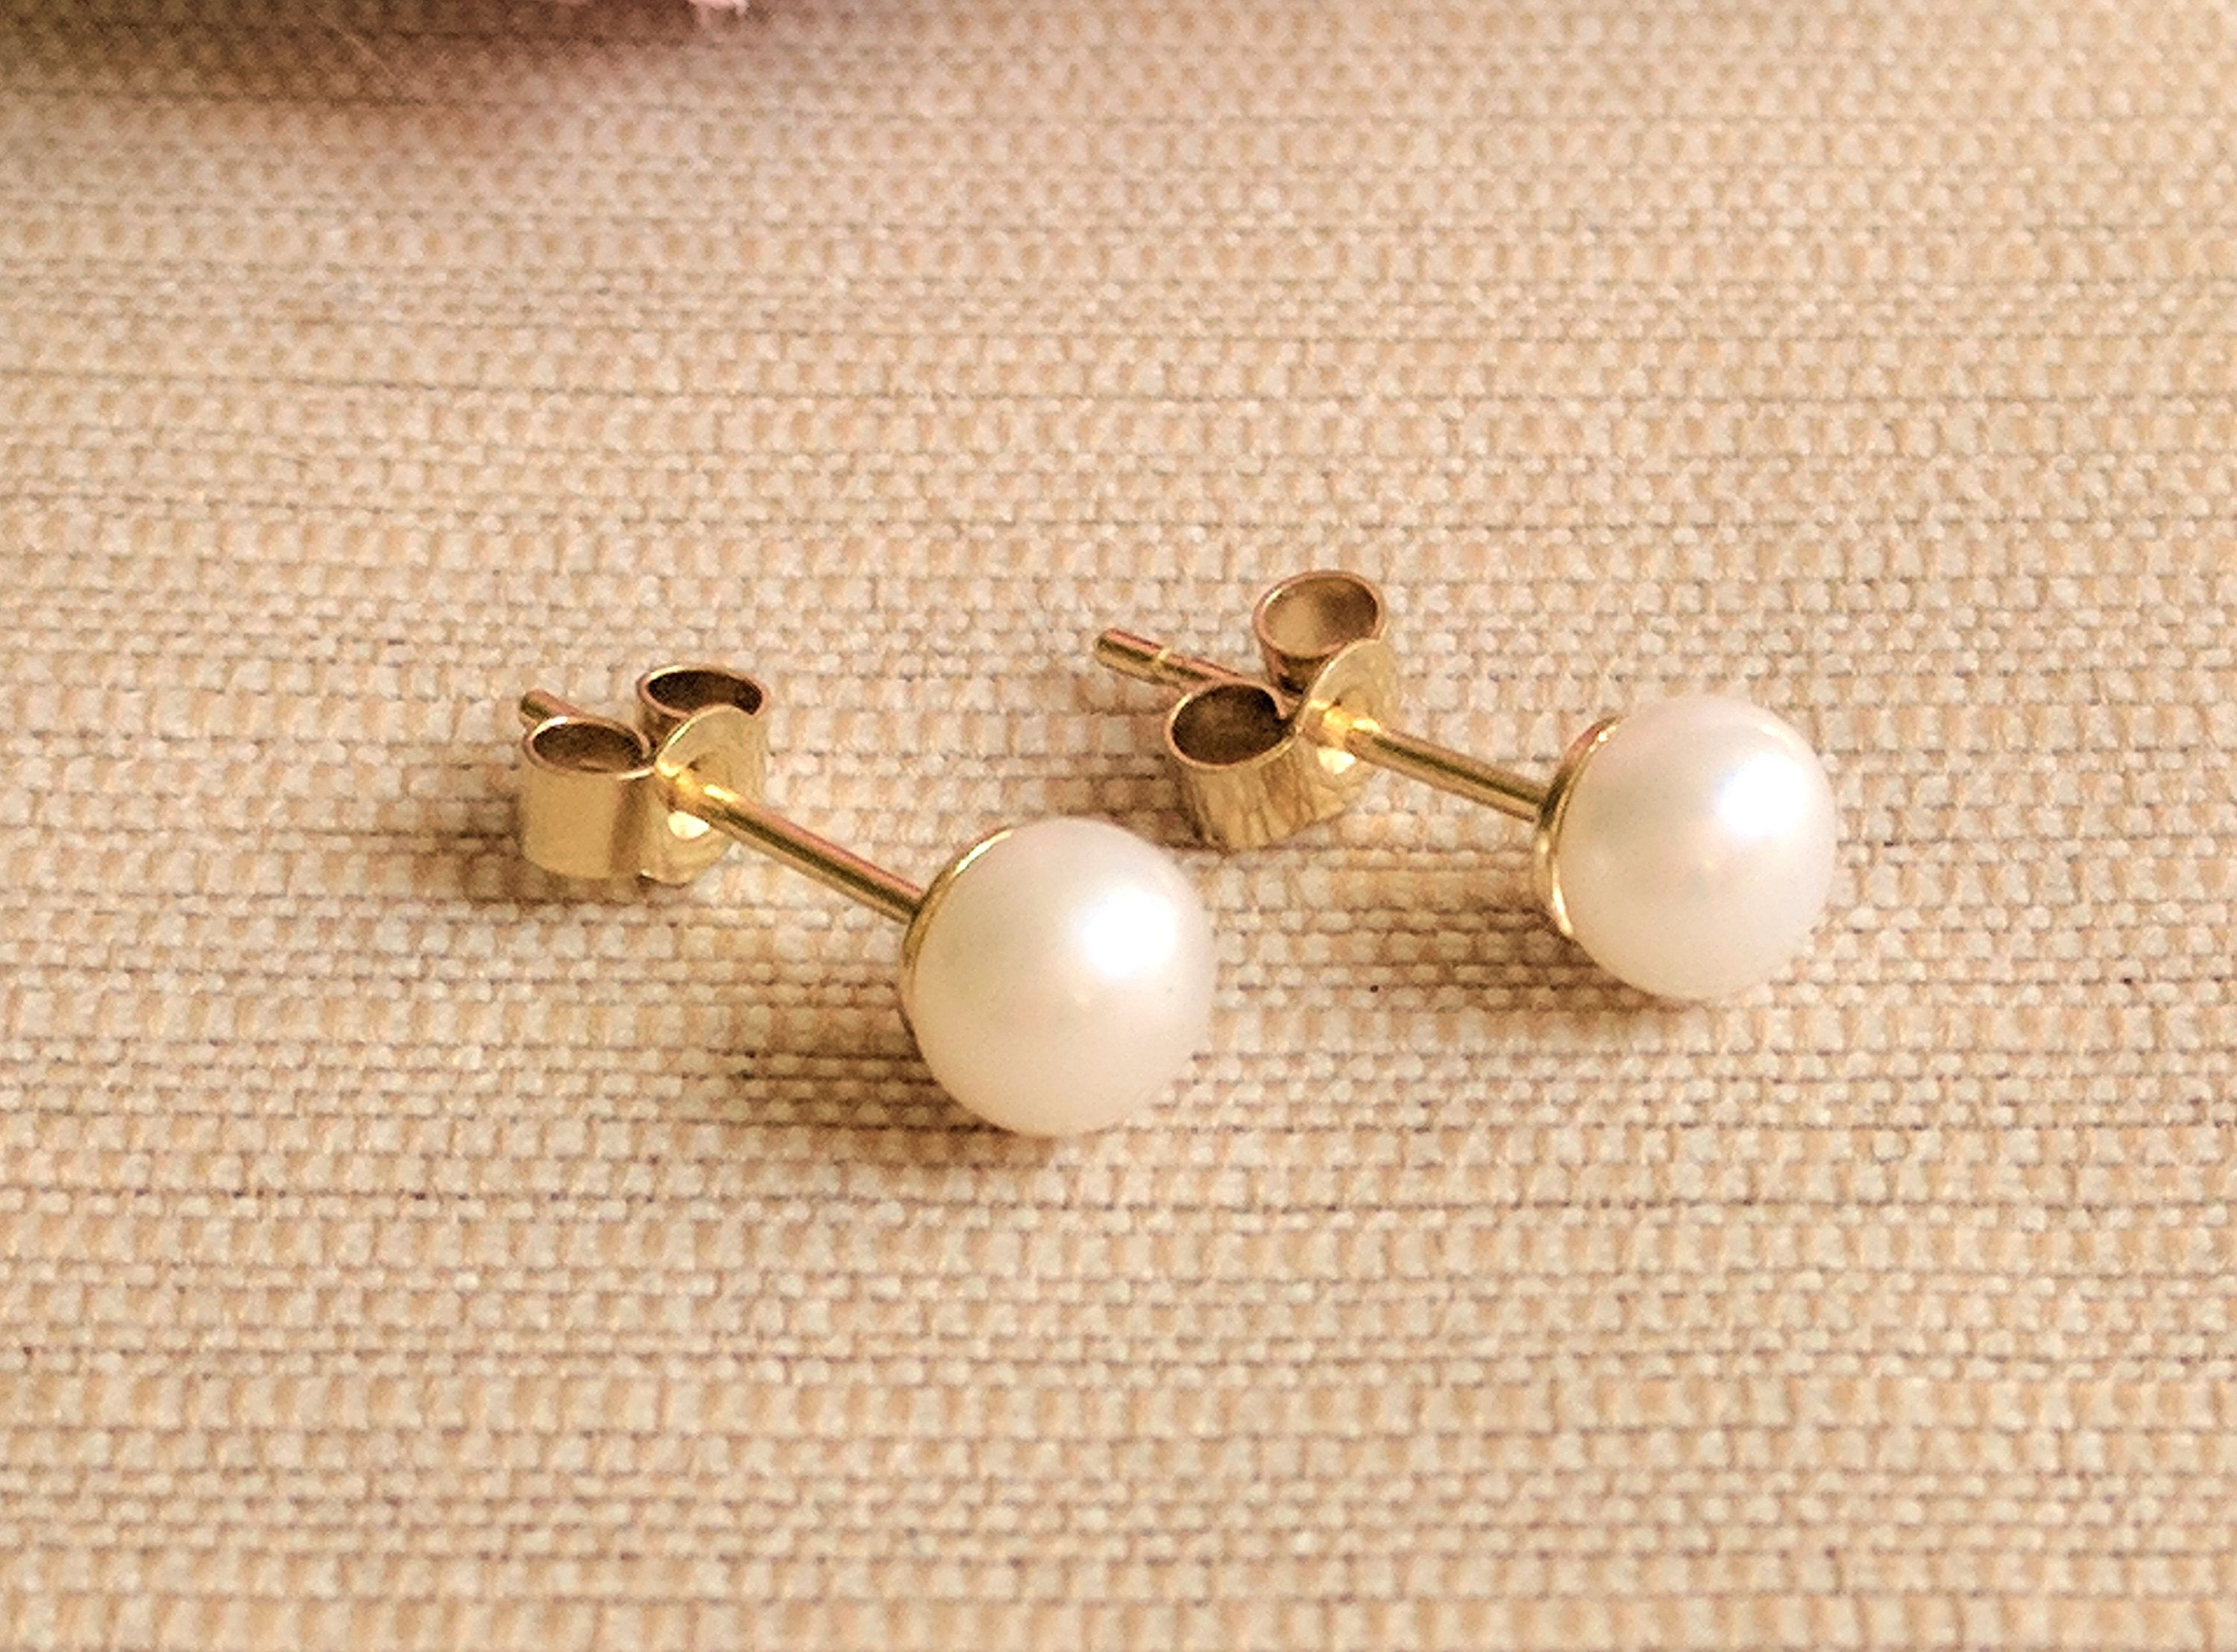 freshwater yellow collections maui pearl divers jewelry shop at peach in stud online gold earrings real tagged